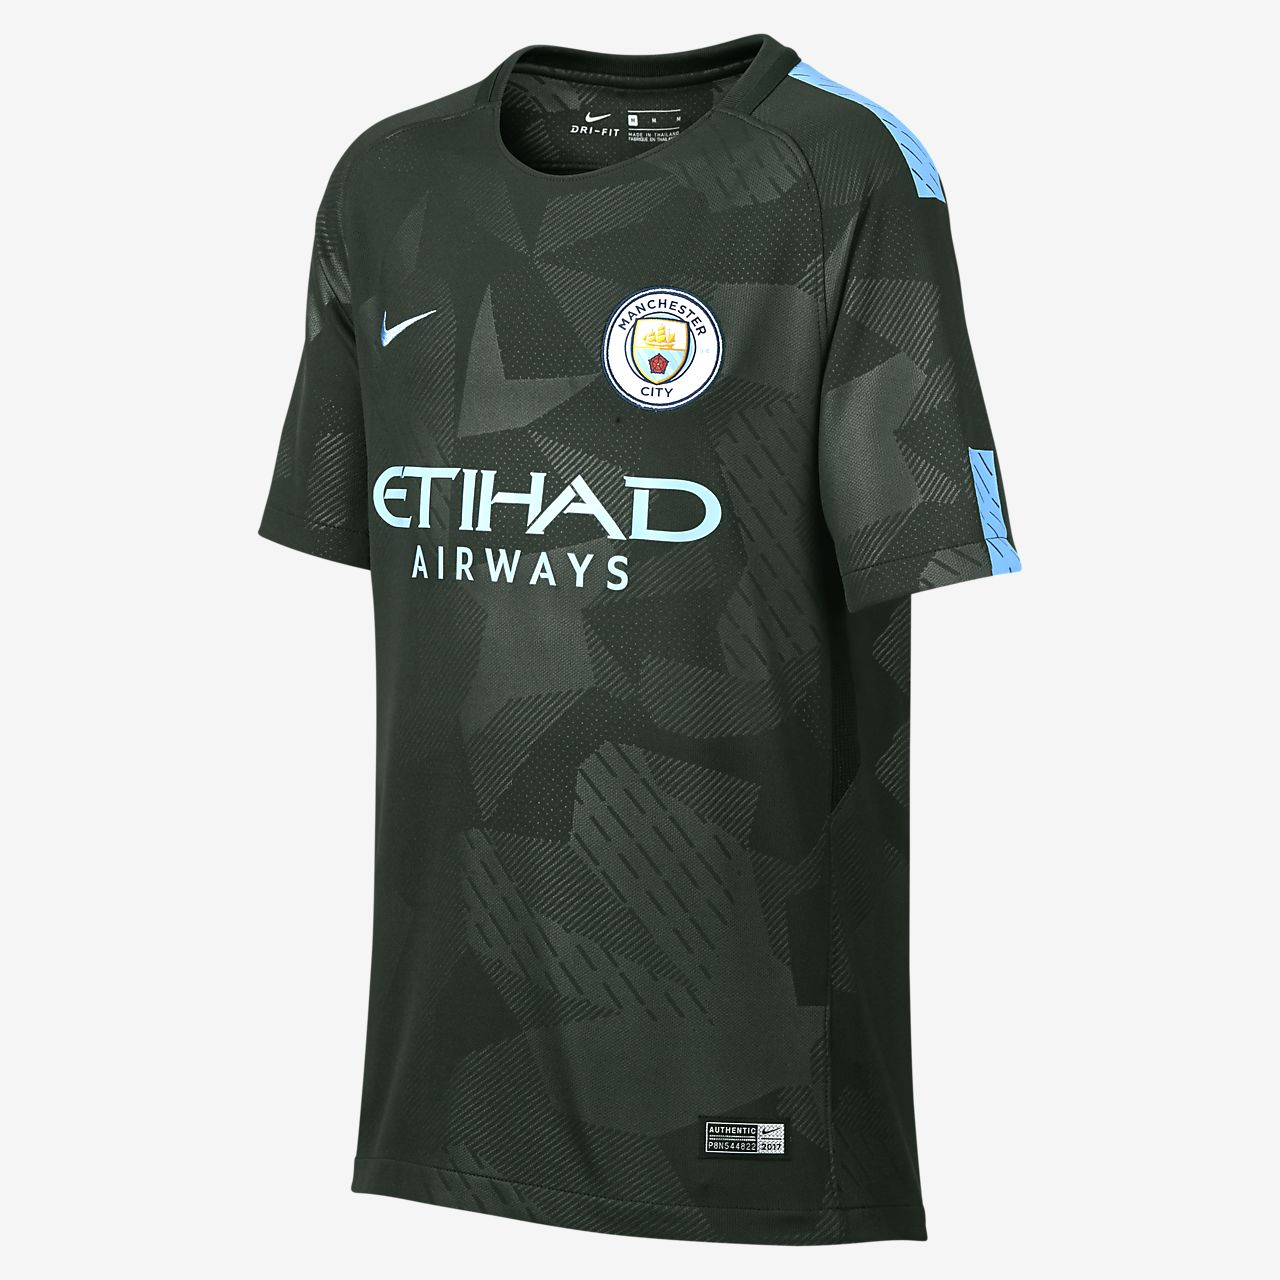 ... 2017/18 Manchester City FC Stadium Third Older Kids' Football Shirt